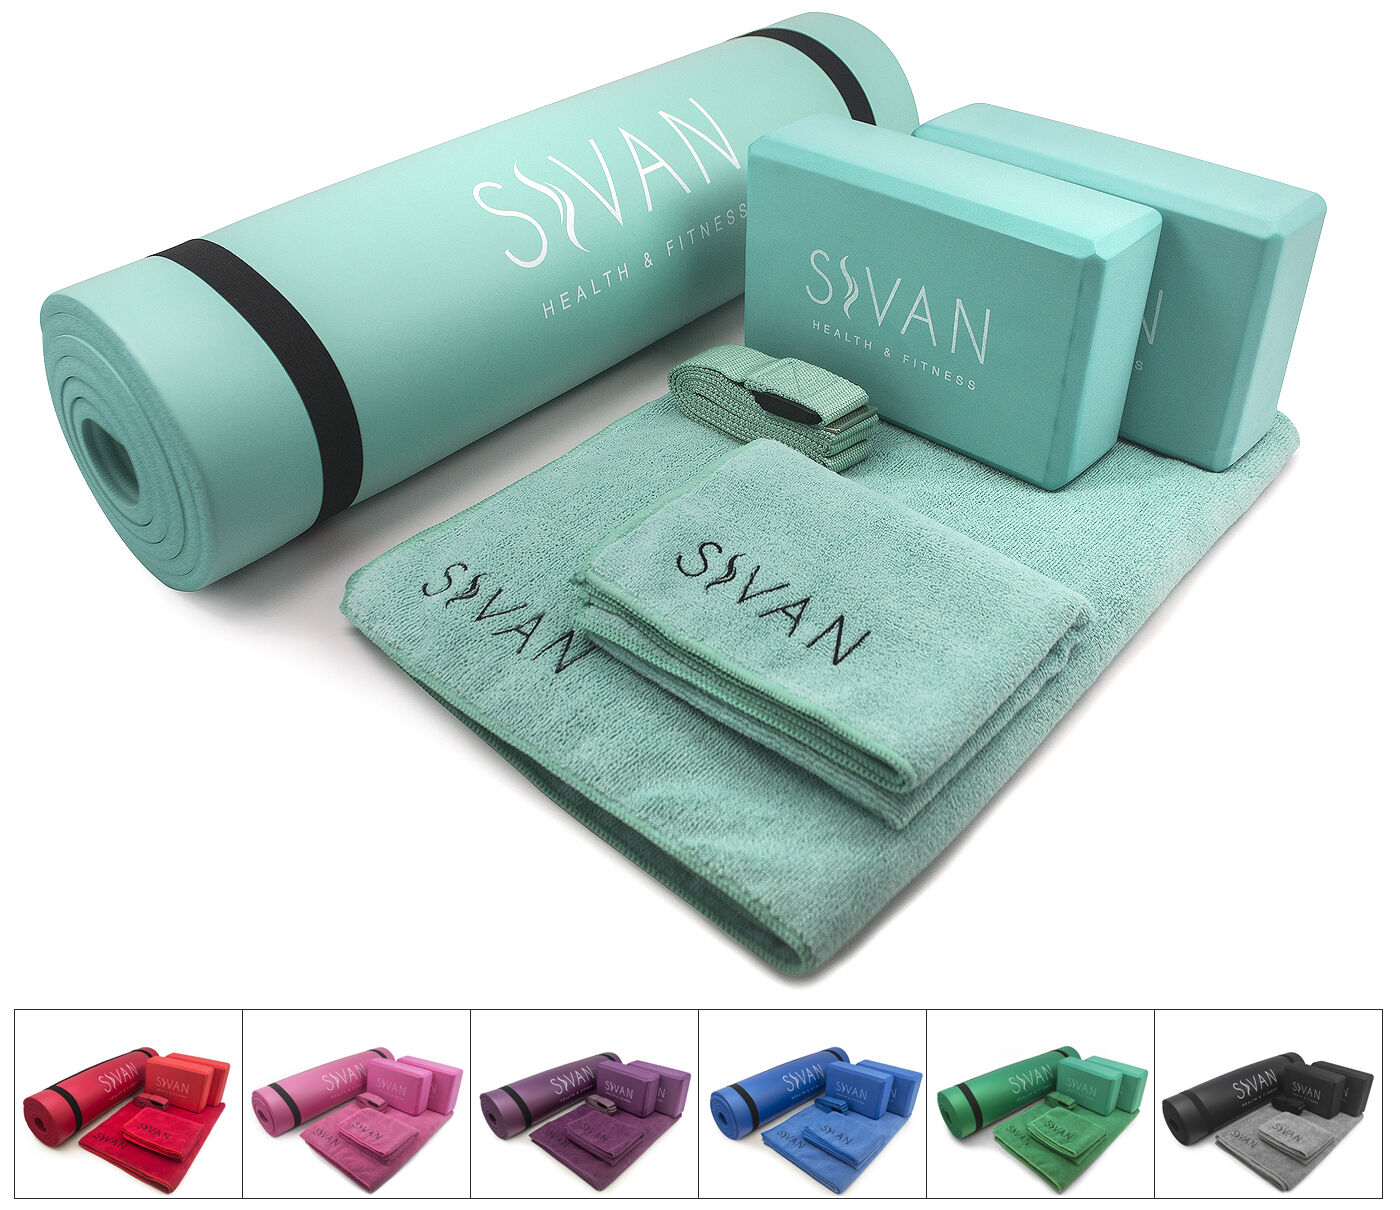 Sivan 6-Piece Yoga Set- Exercise Mat, Blocks, Mat, Towel, Hand Towel